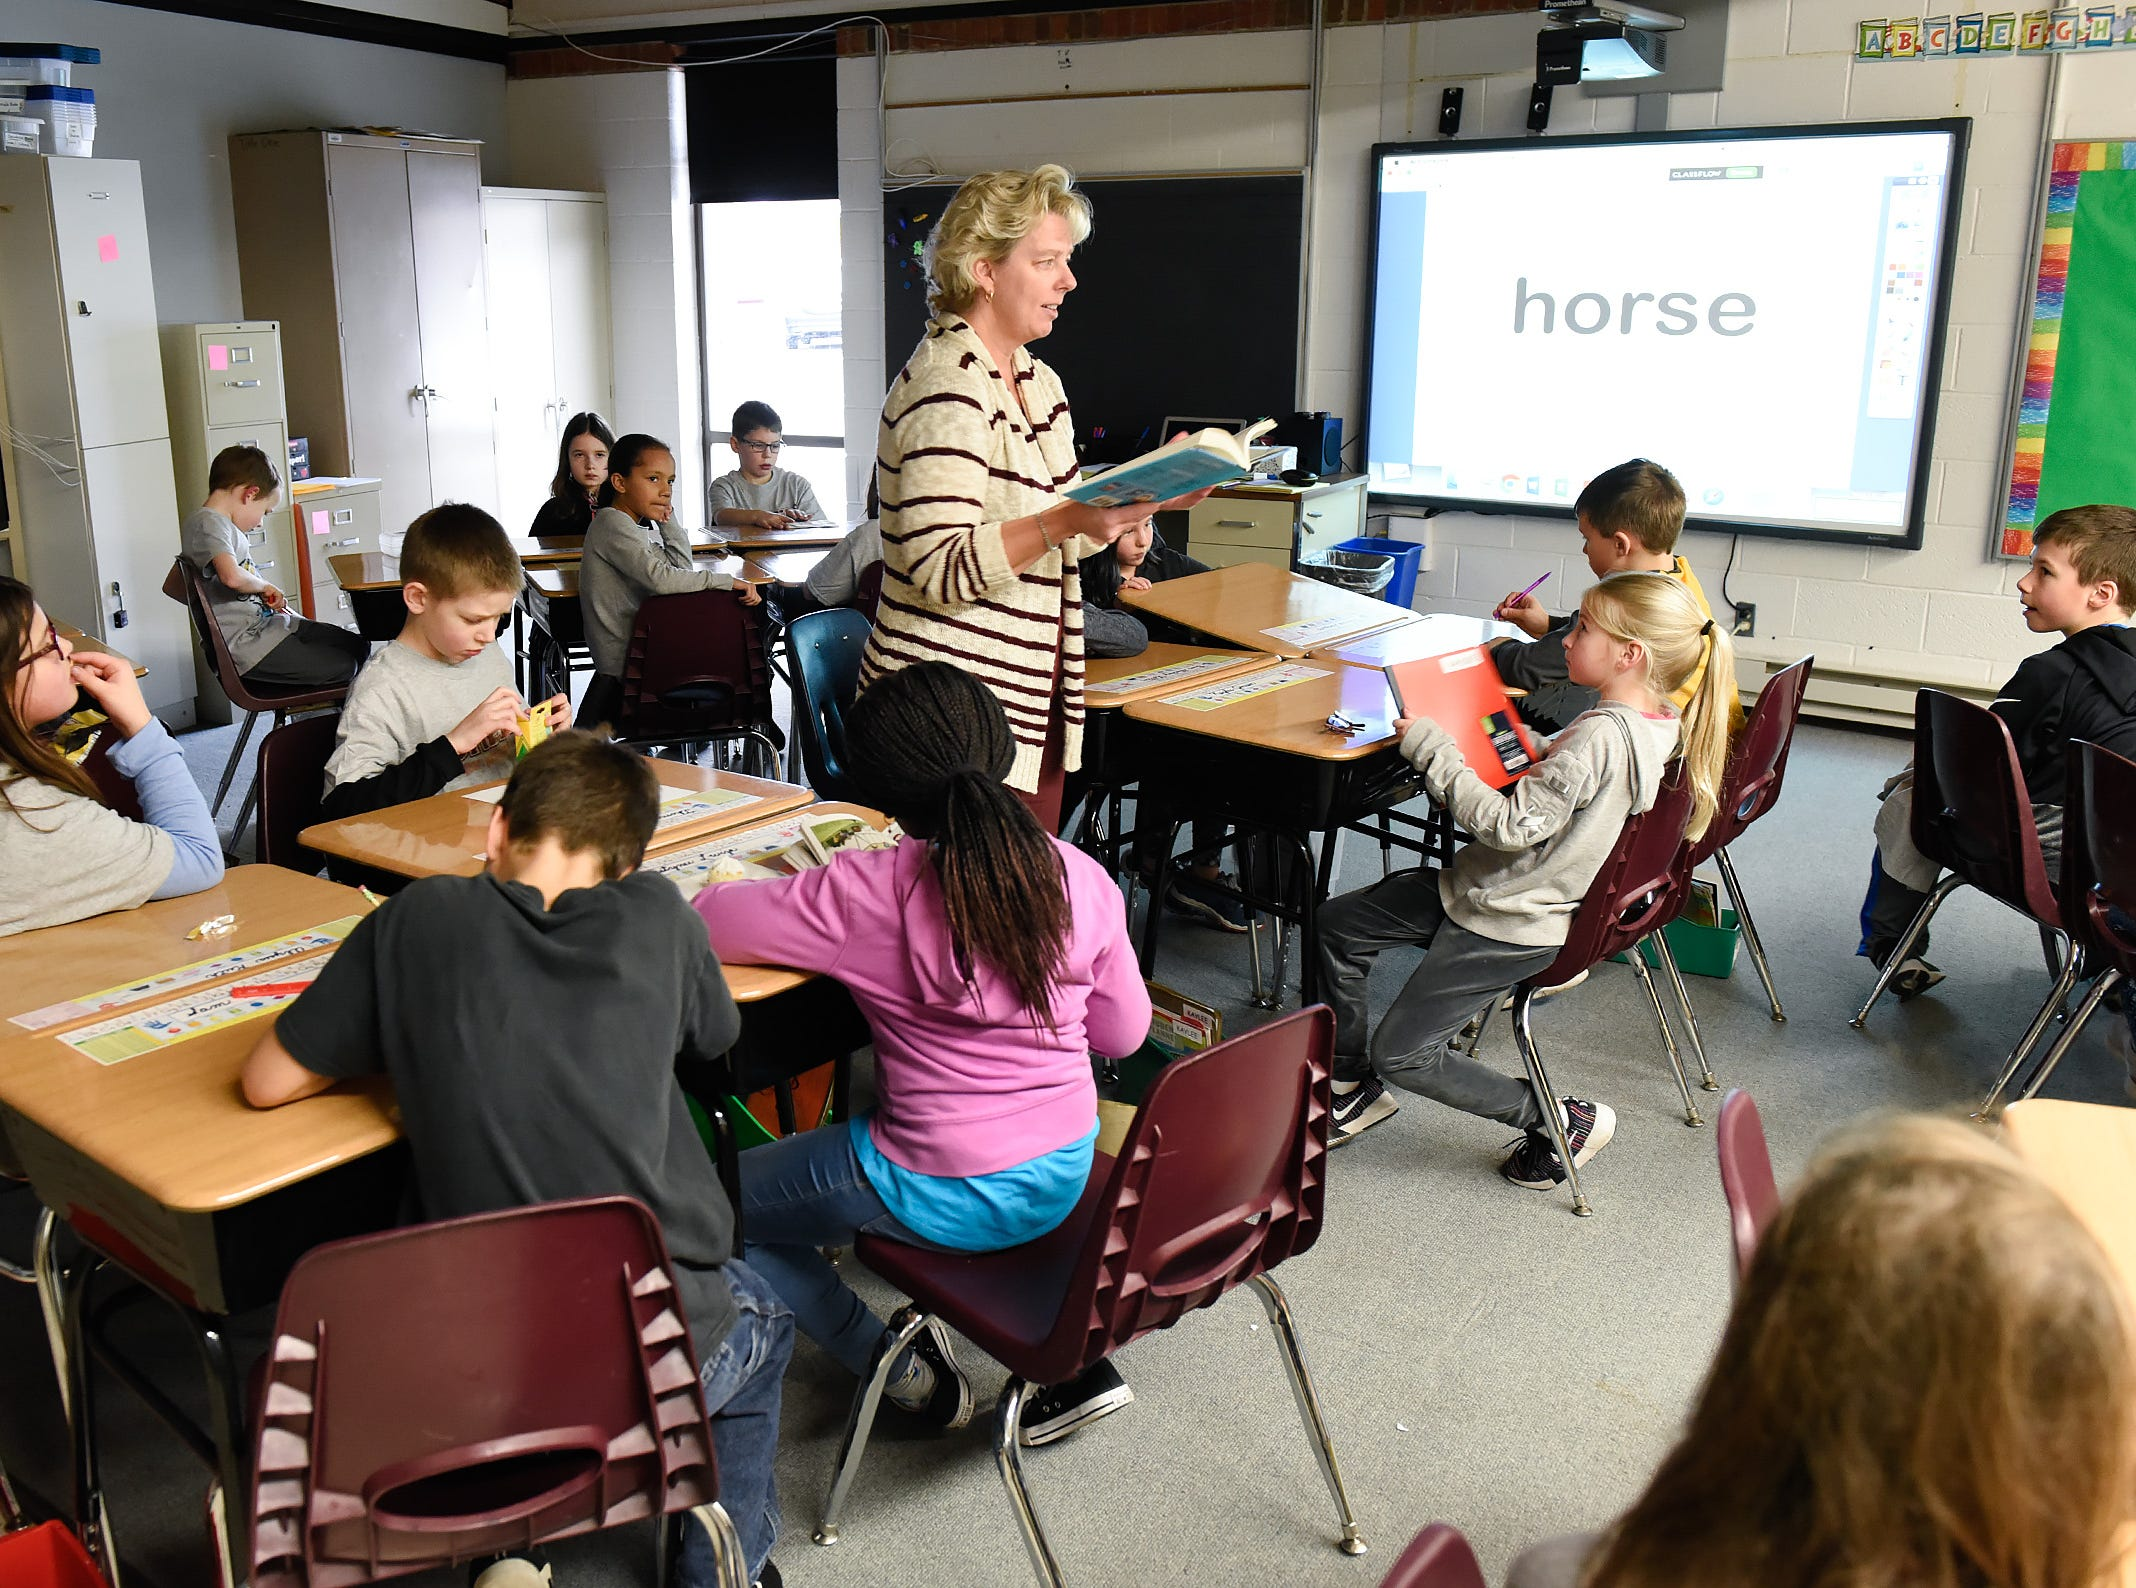 Teacher Val Martin has found a temporary home for her third grade class Tuesday, Jan. 15, since a fire damaged classrooms at Pleasantview Elementary School in Sauk Rapids.